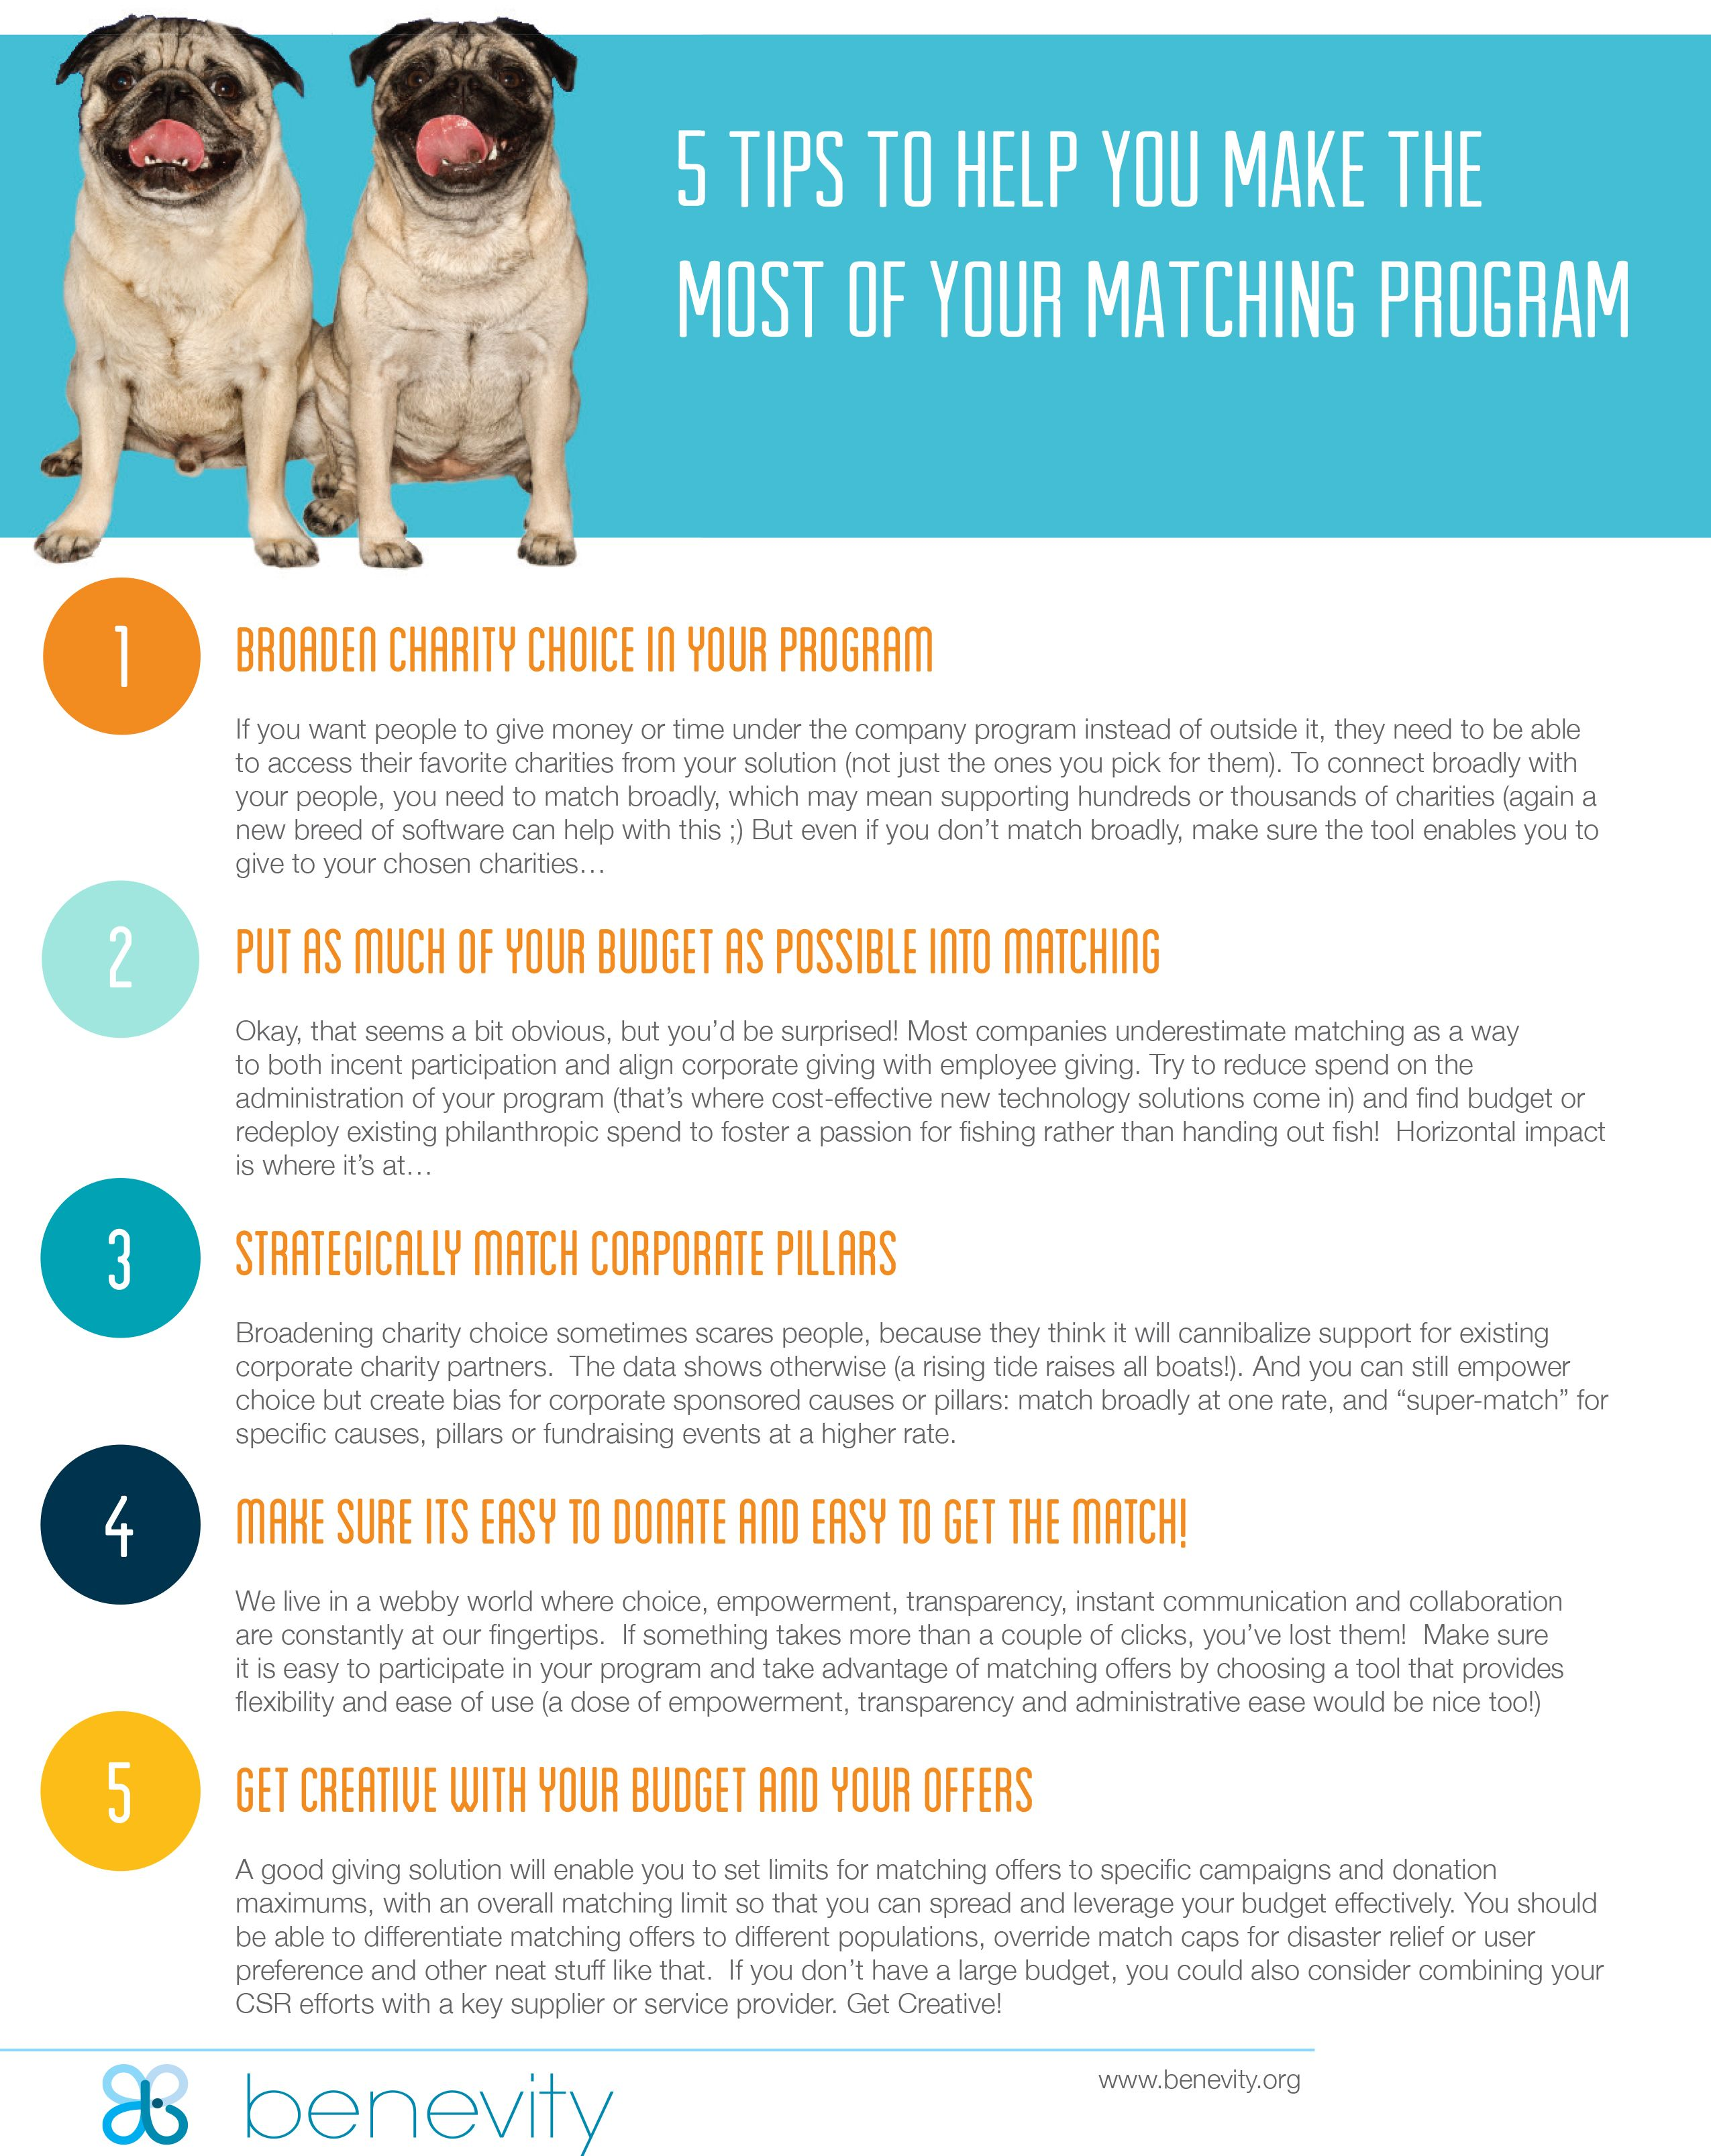 5 Tips to Help You Make the Most of Your Matching Program